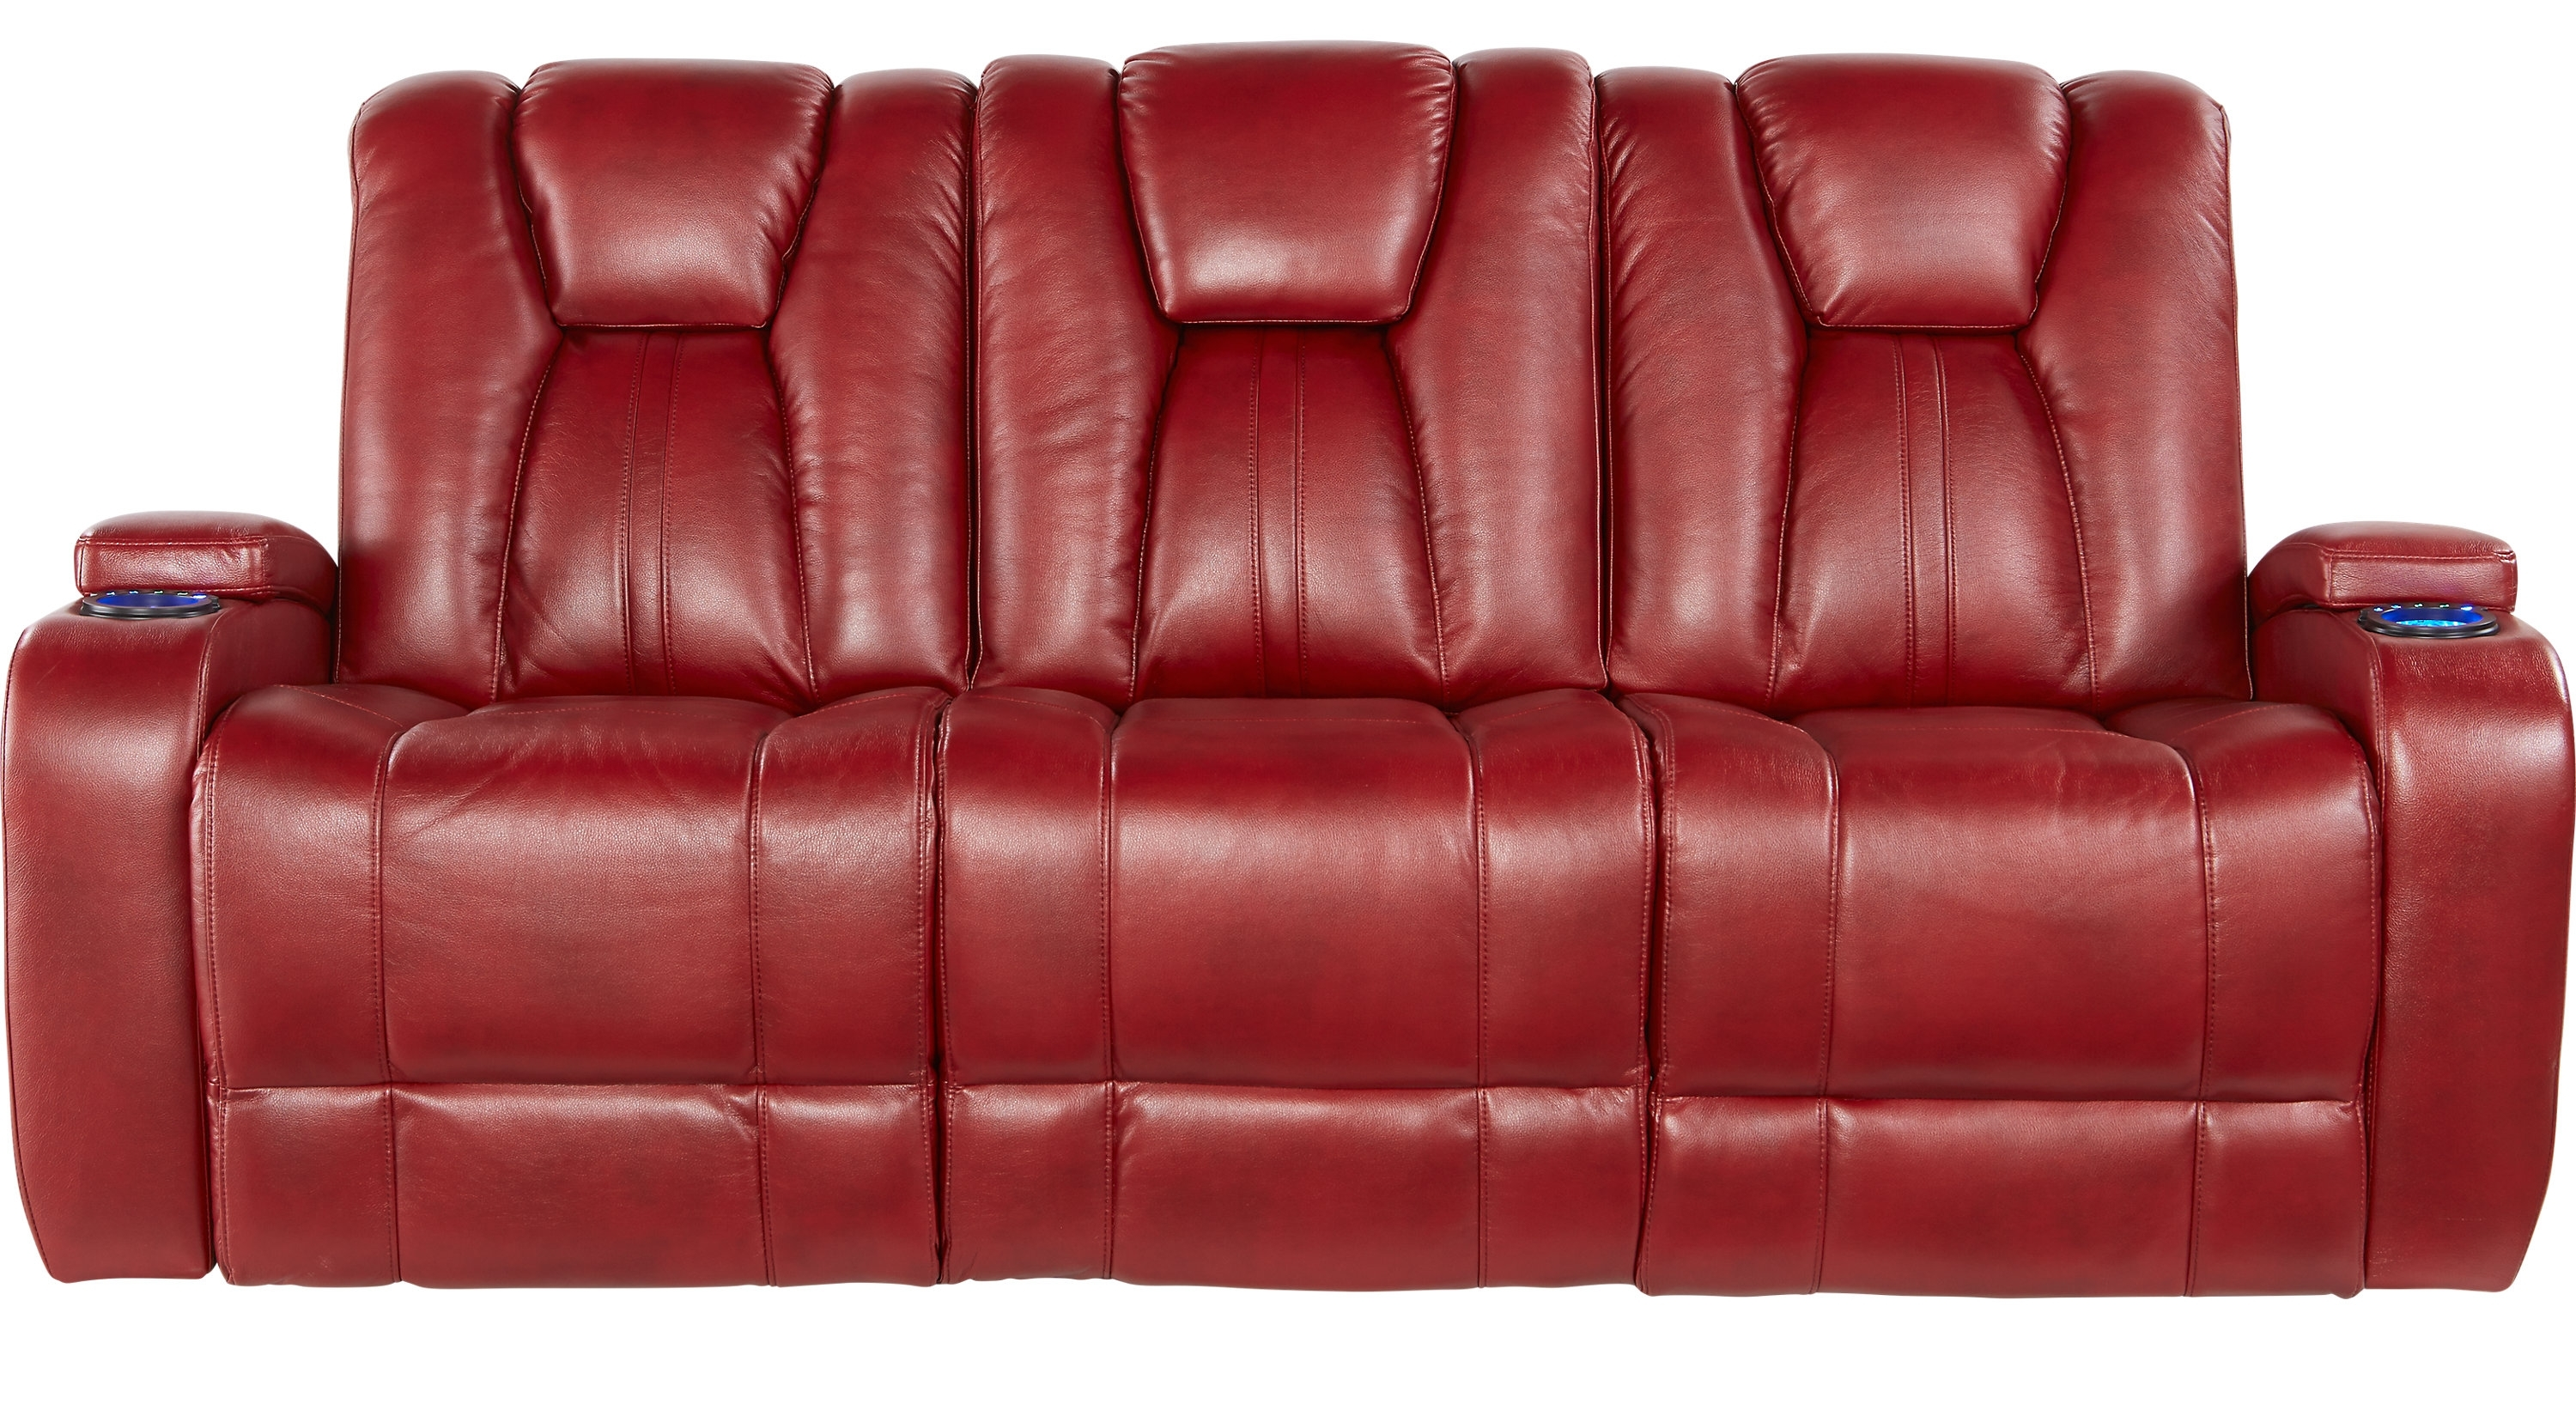 Trendy Red Leather Reclining Sofas And Loveseats Within Recliner Sofas For Sale (View 13 of 15)